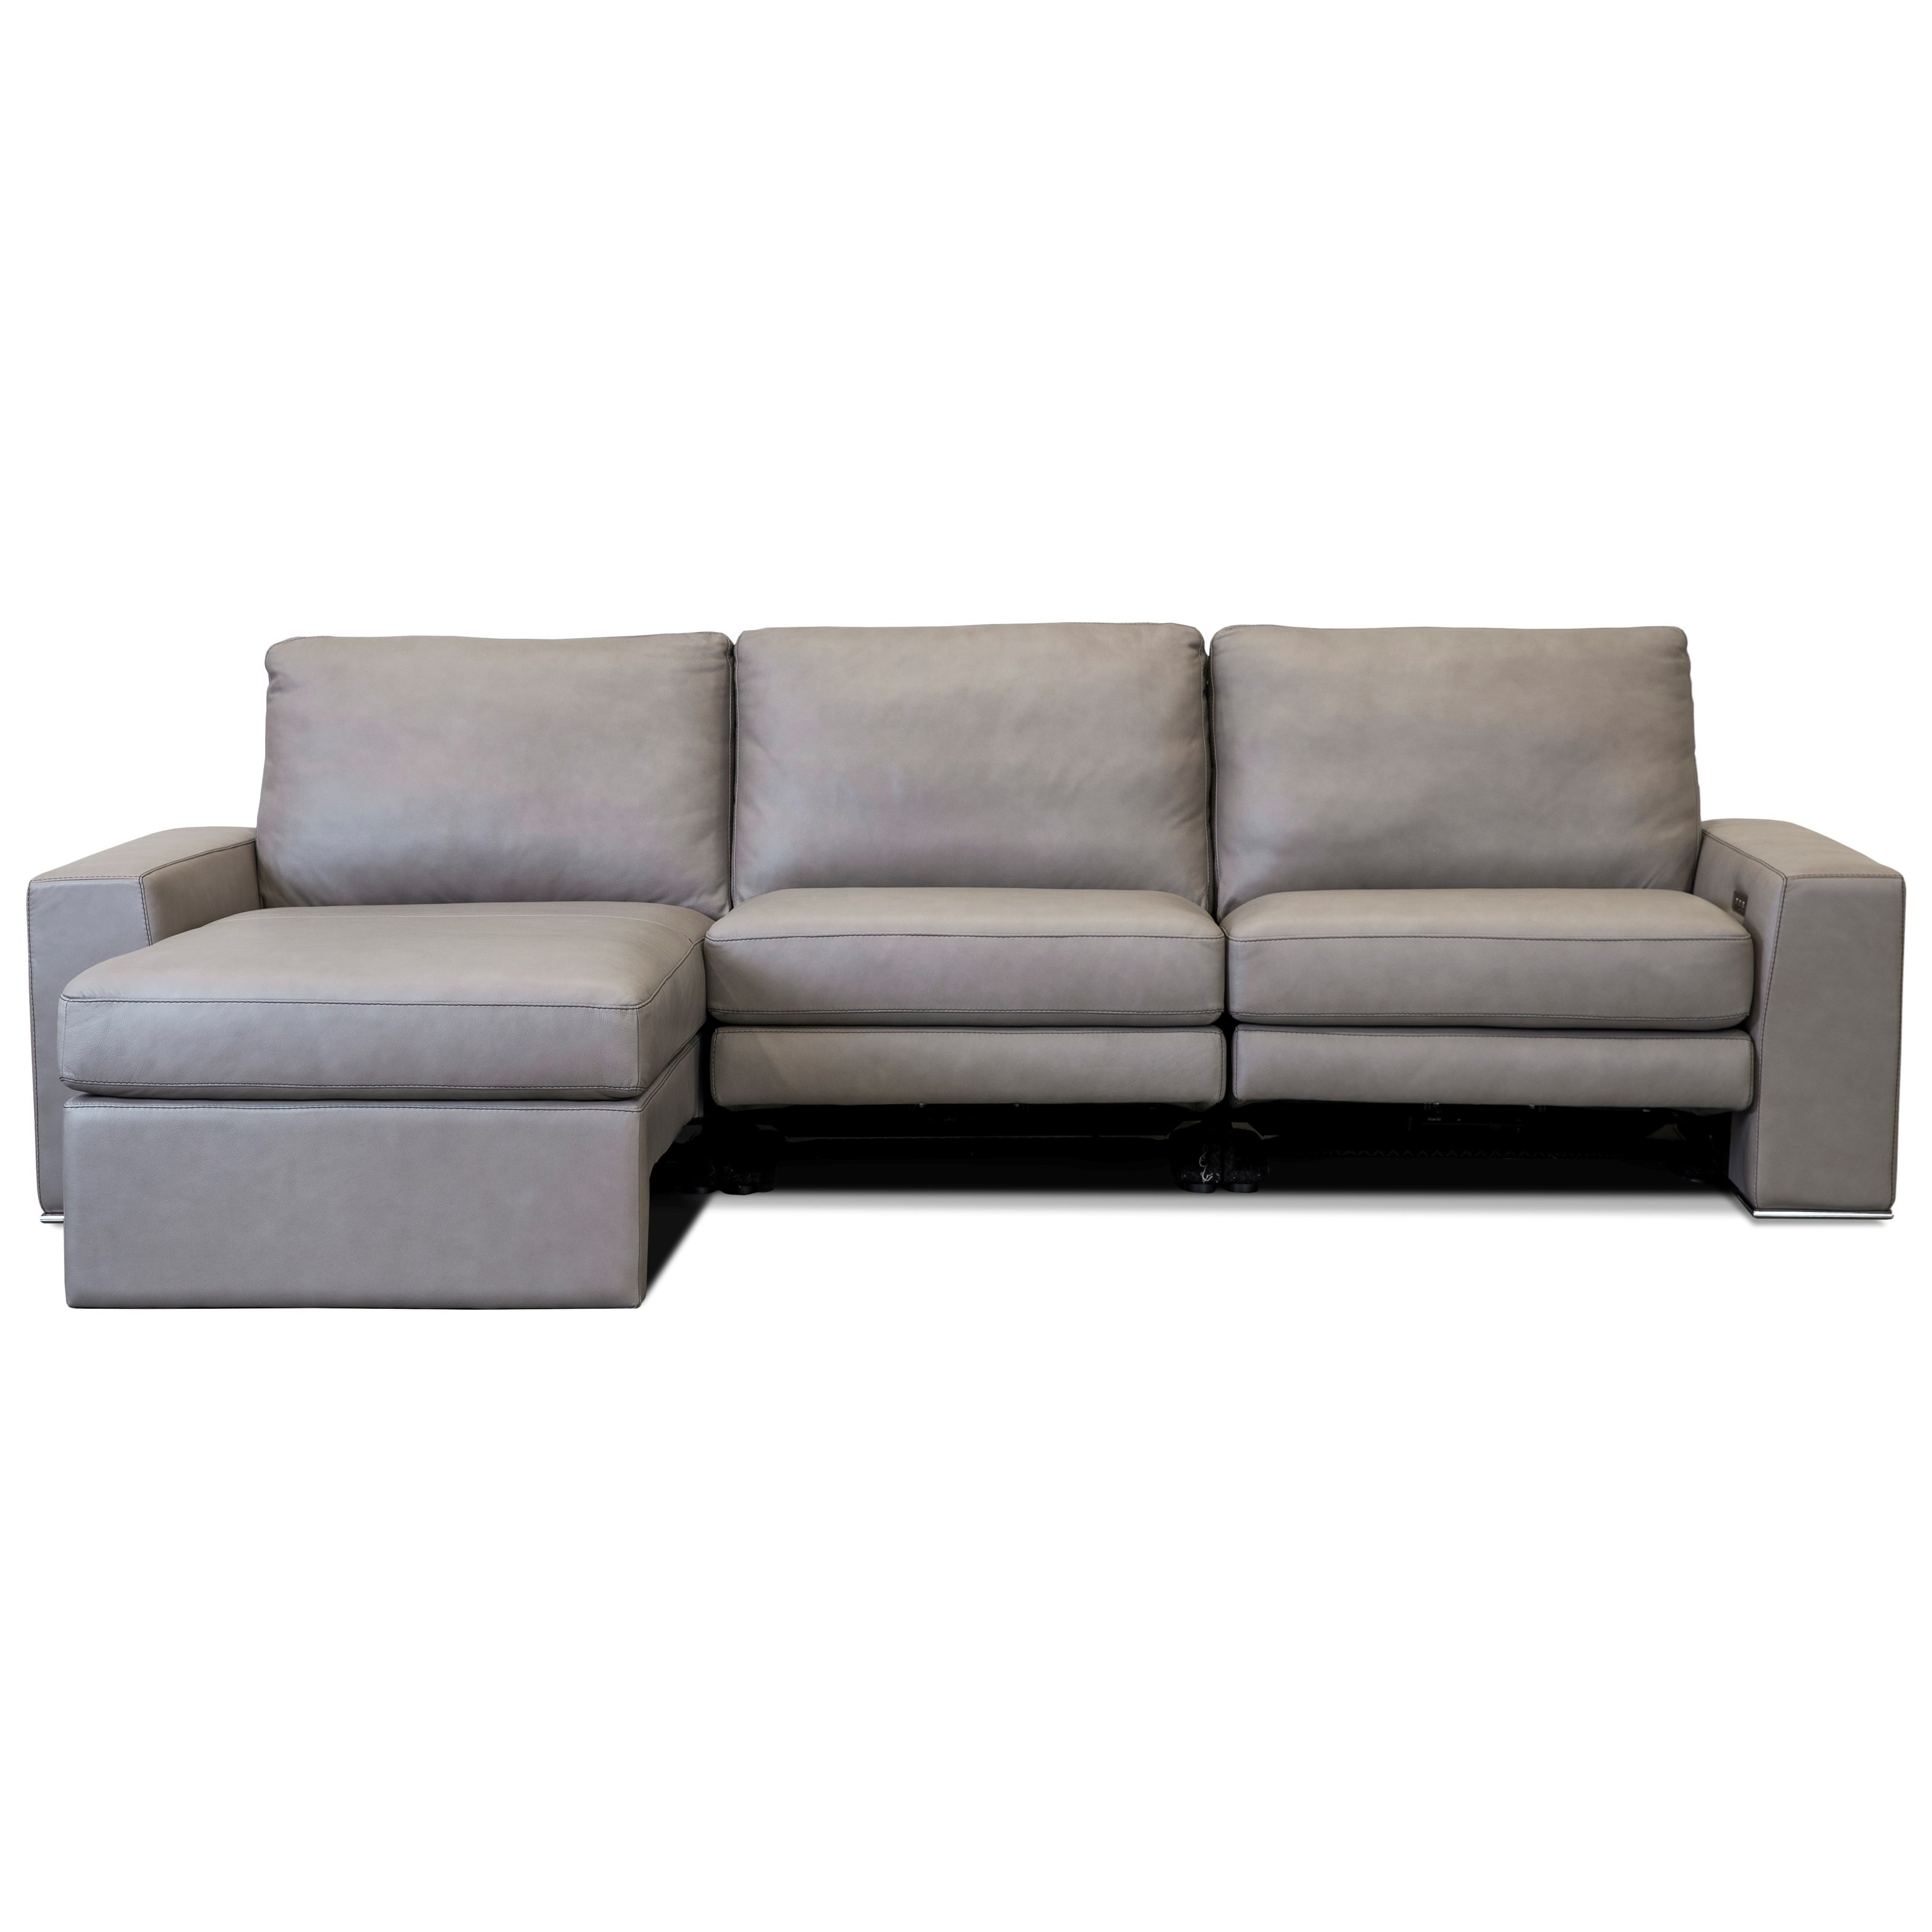 Paxton Reclining Sectional Sofa w/ LAF Chaise by American Leather at Sprintz Furniture